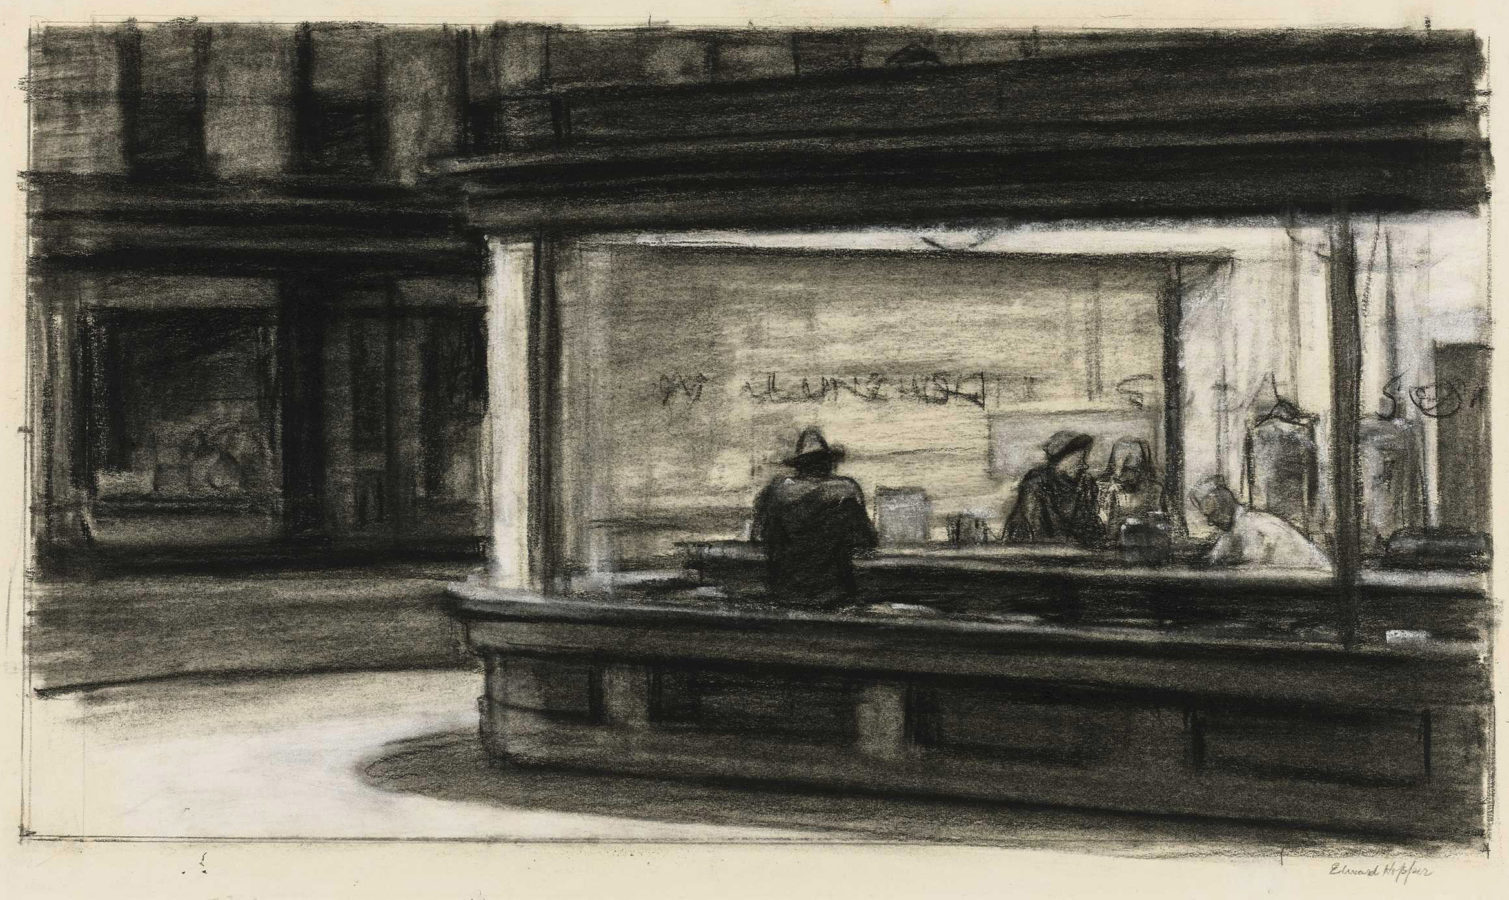 Edward Hopper's Creative Process: The Drawing & Careful Preparation Behind Nighthawks & Other Iconic Paintings